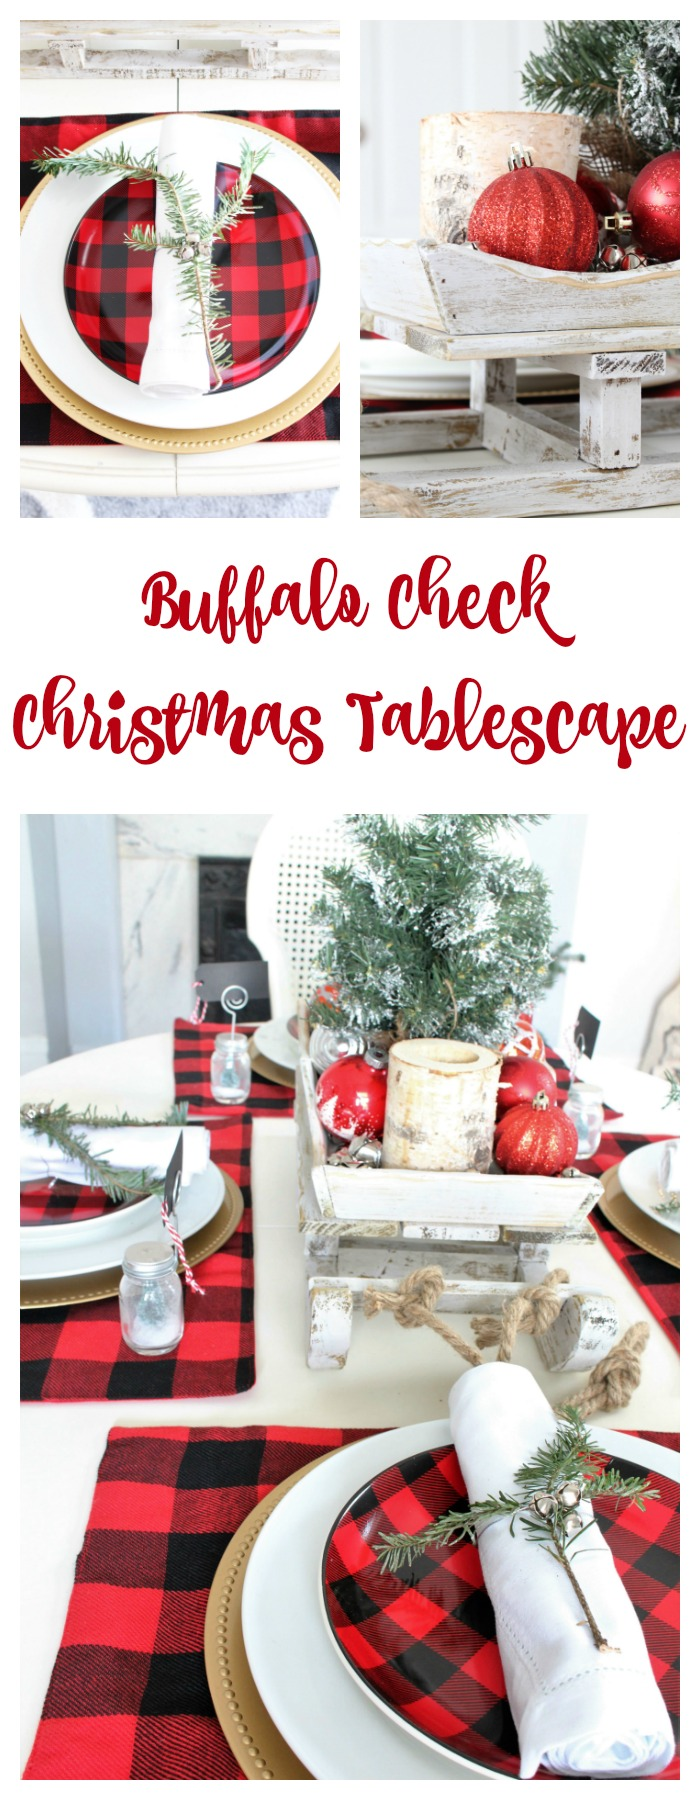 Make Christmas Centerpiece Your Own